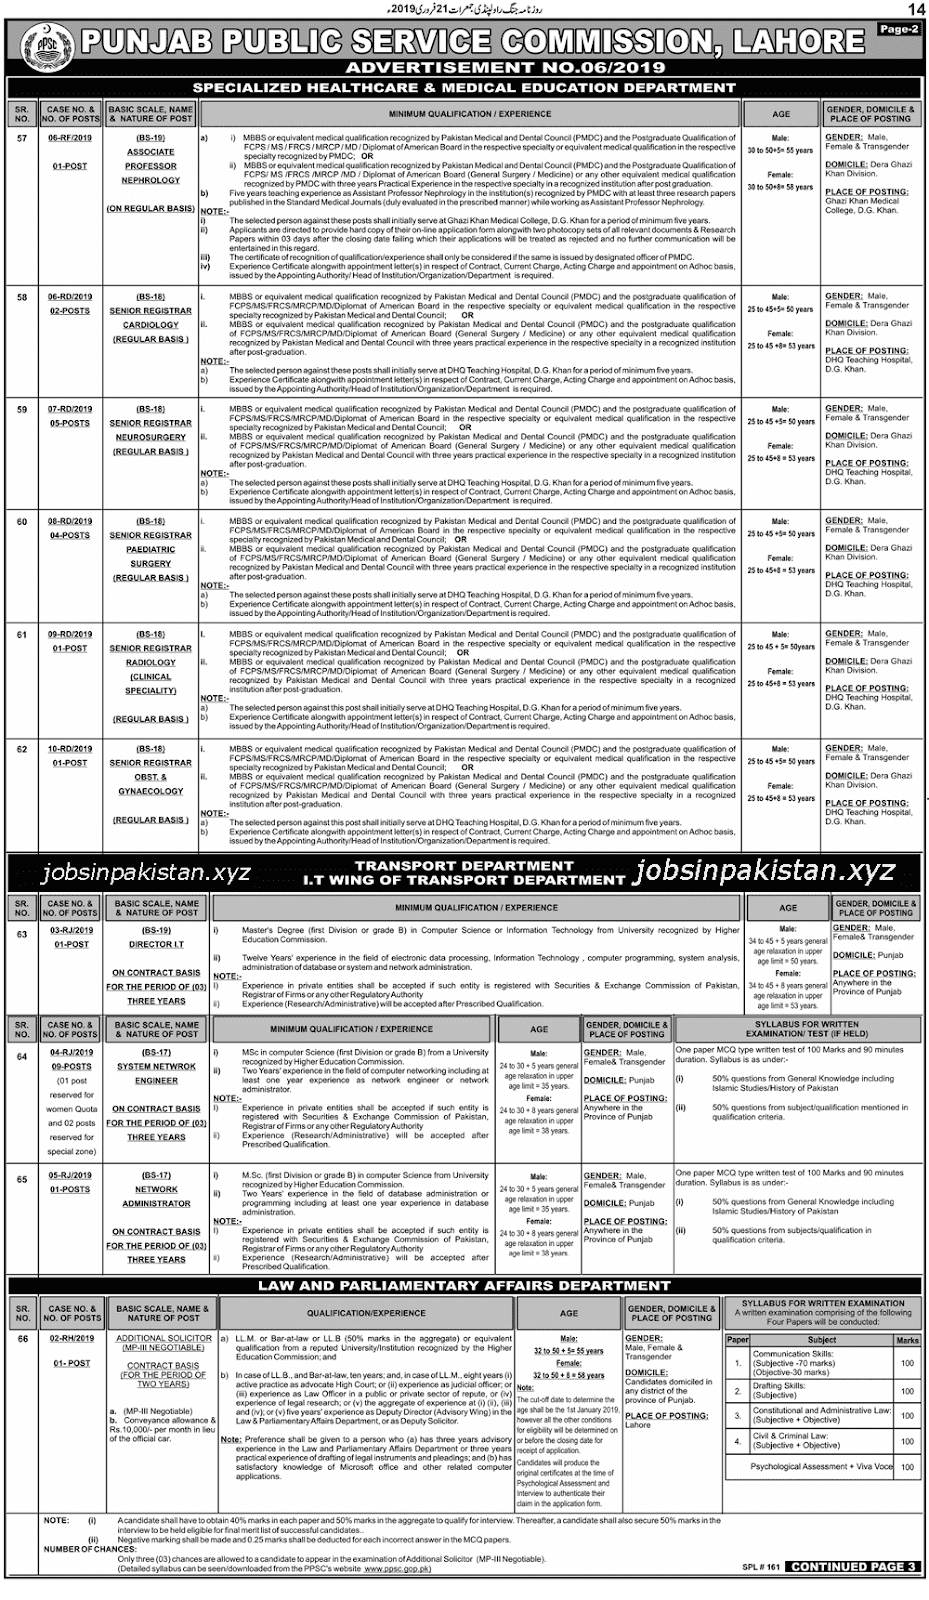 PPSC Advertisement 06/2019 Page No. 2/3